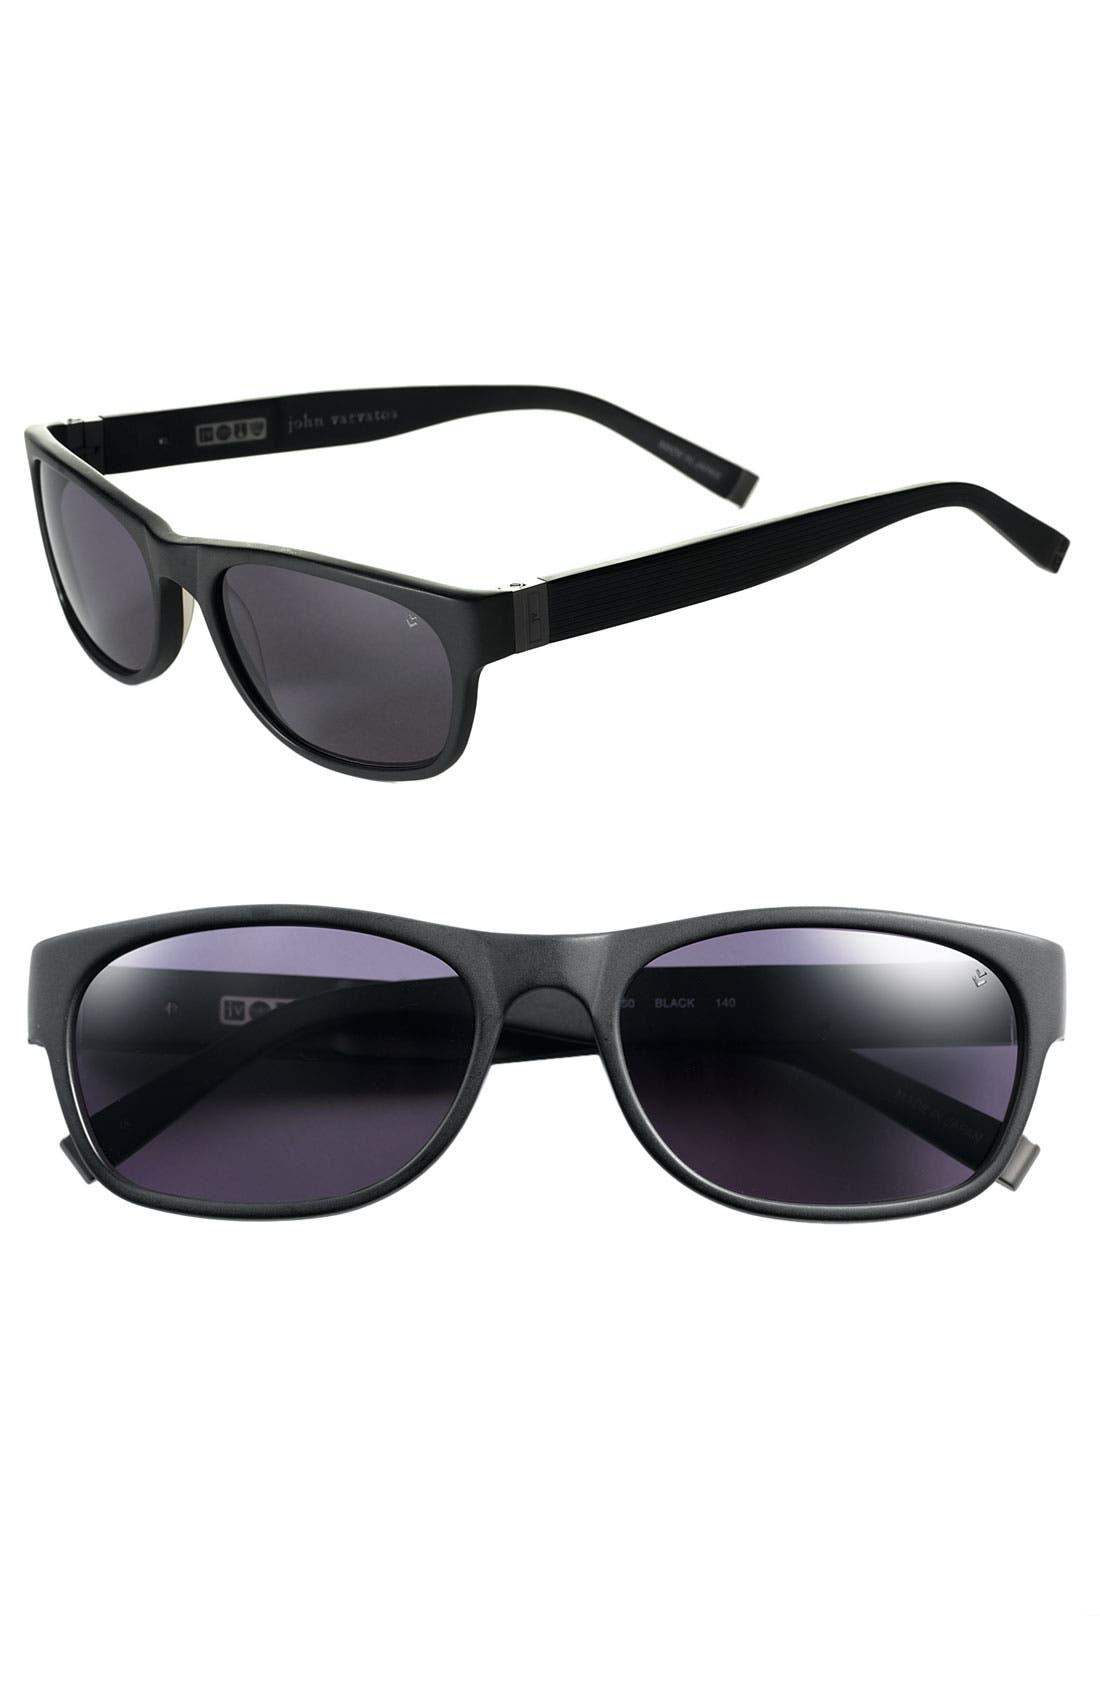 Main Image - John Varvatos Collection 'Swirl' Plastic Sunglasses